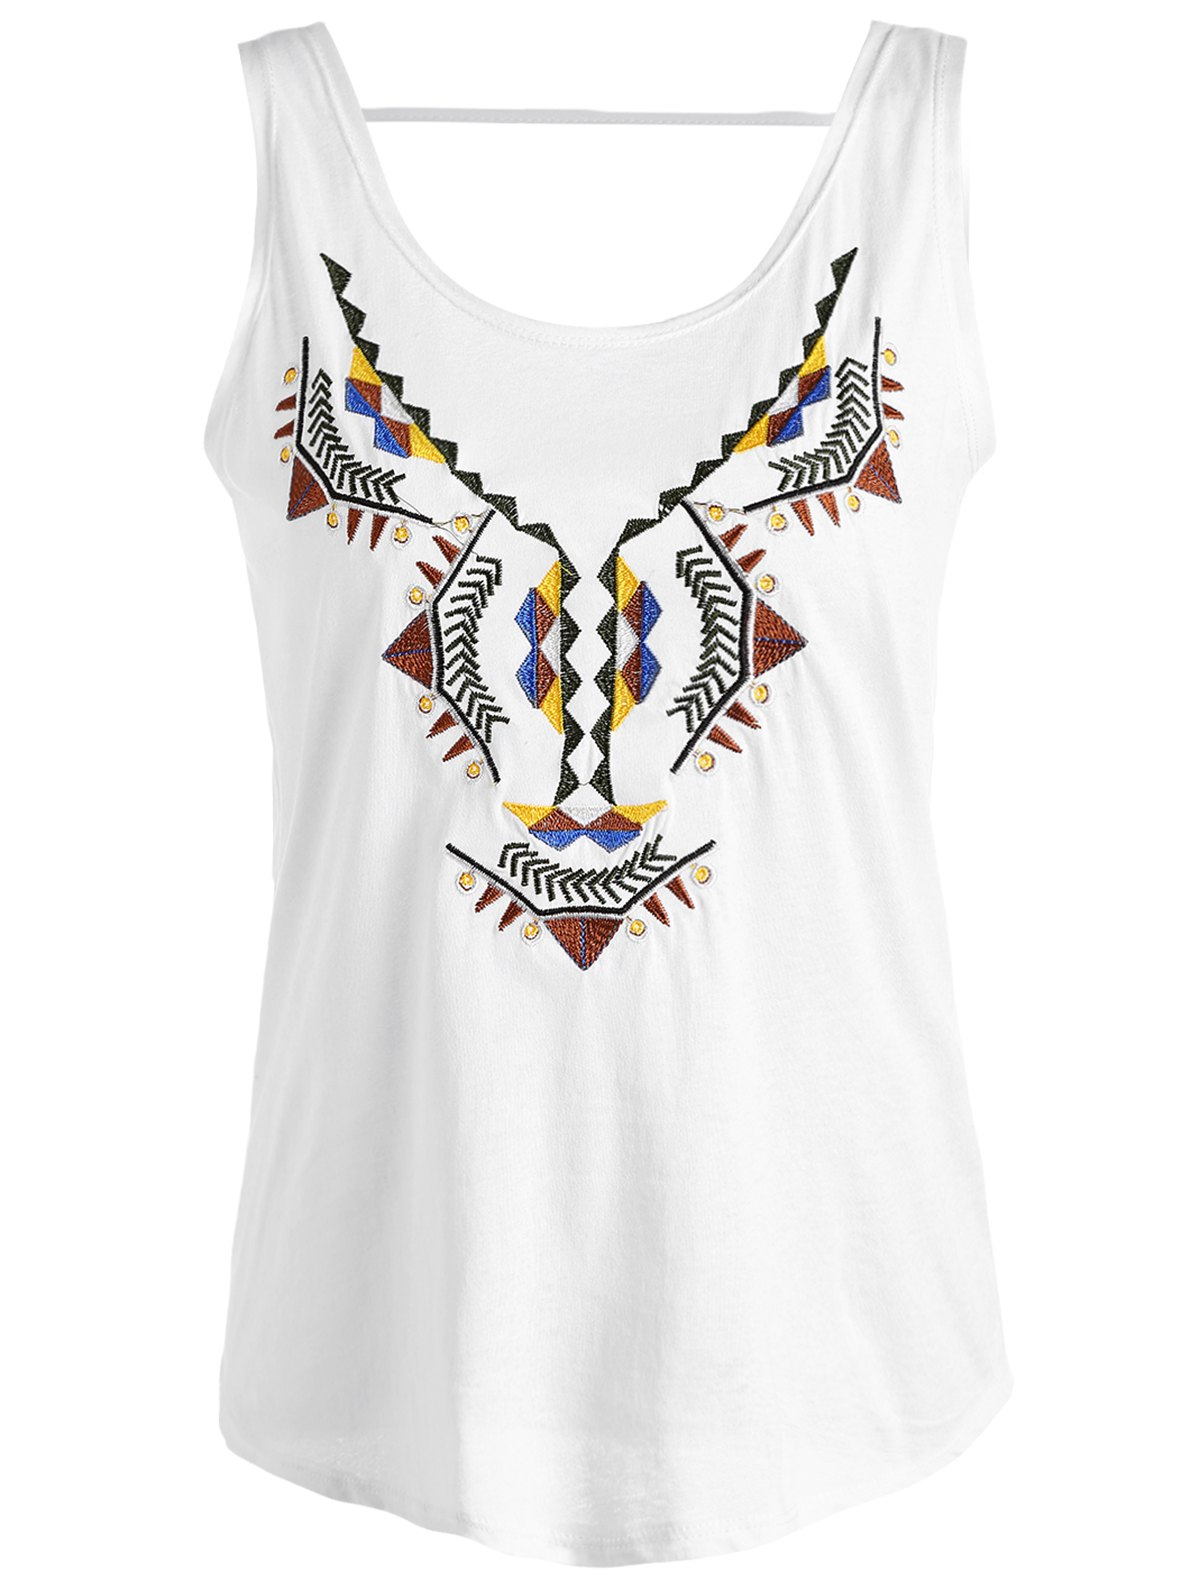 Trendy Embroidered Scoop Neck Women's Tank Top - WHITE ONE SIZE(FIT SIZE XS TO M)